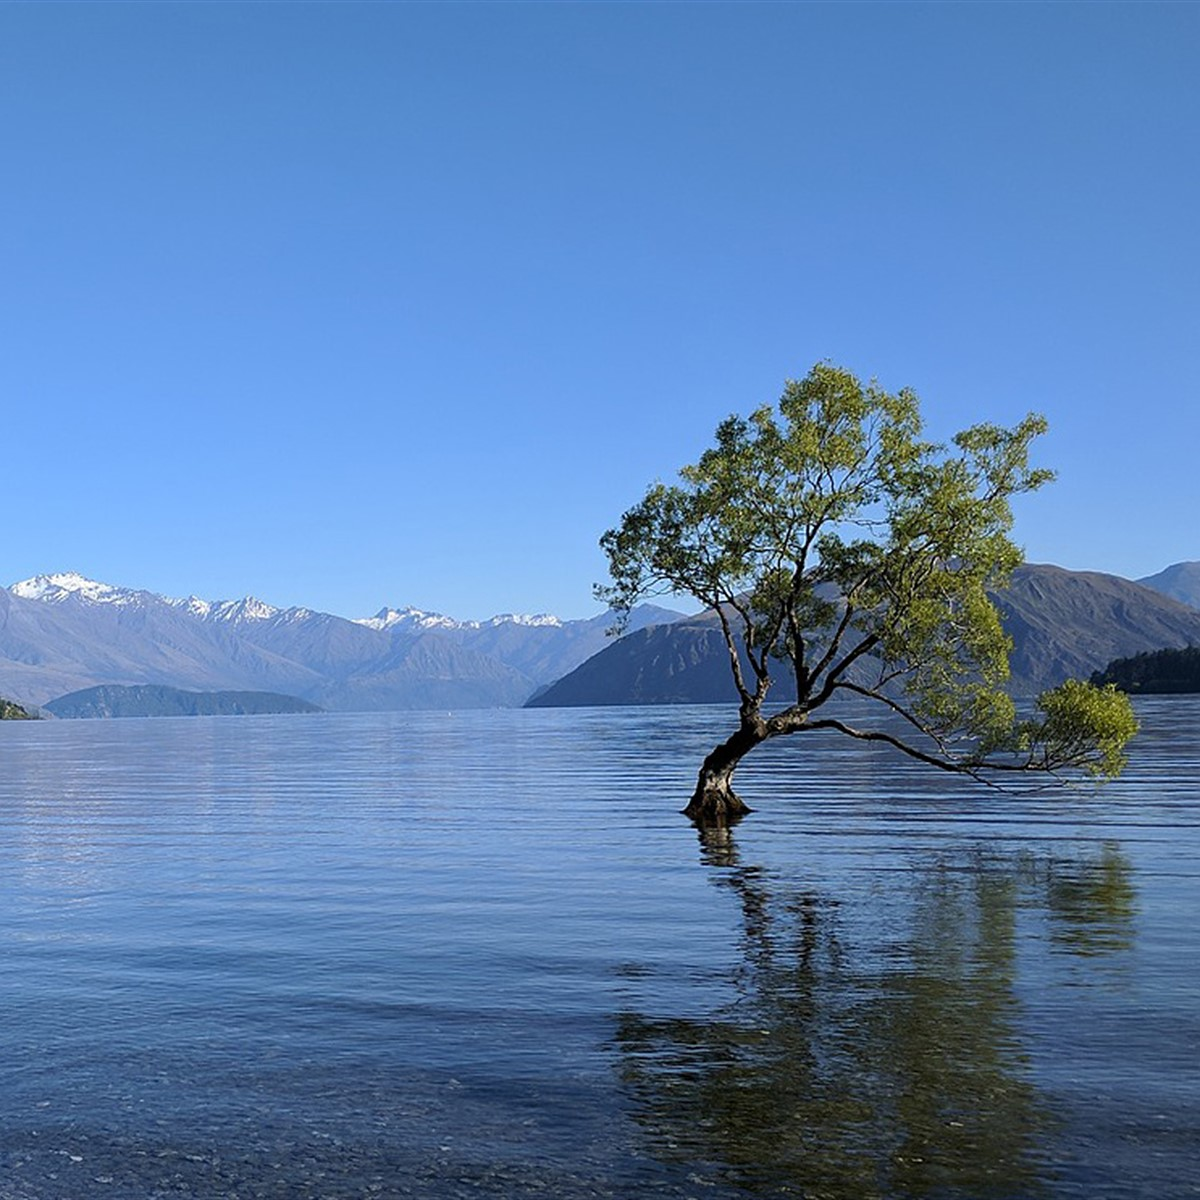 Tourists are destroying New Zealand's iconic Lake Wanaka tree for Instagram  photos: Digital Photography Review